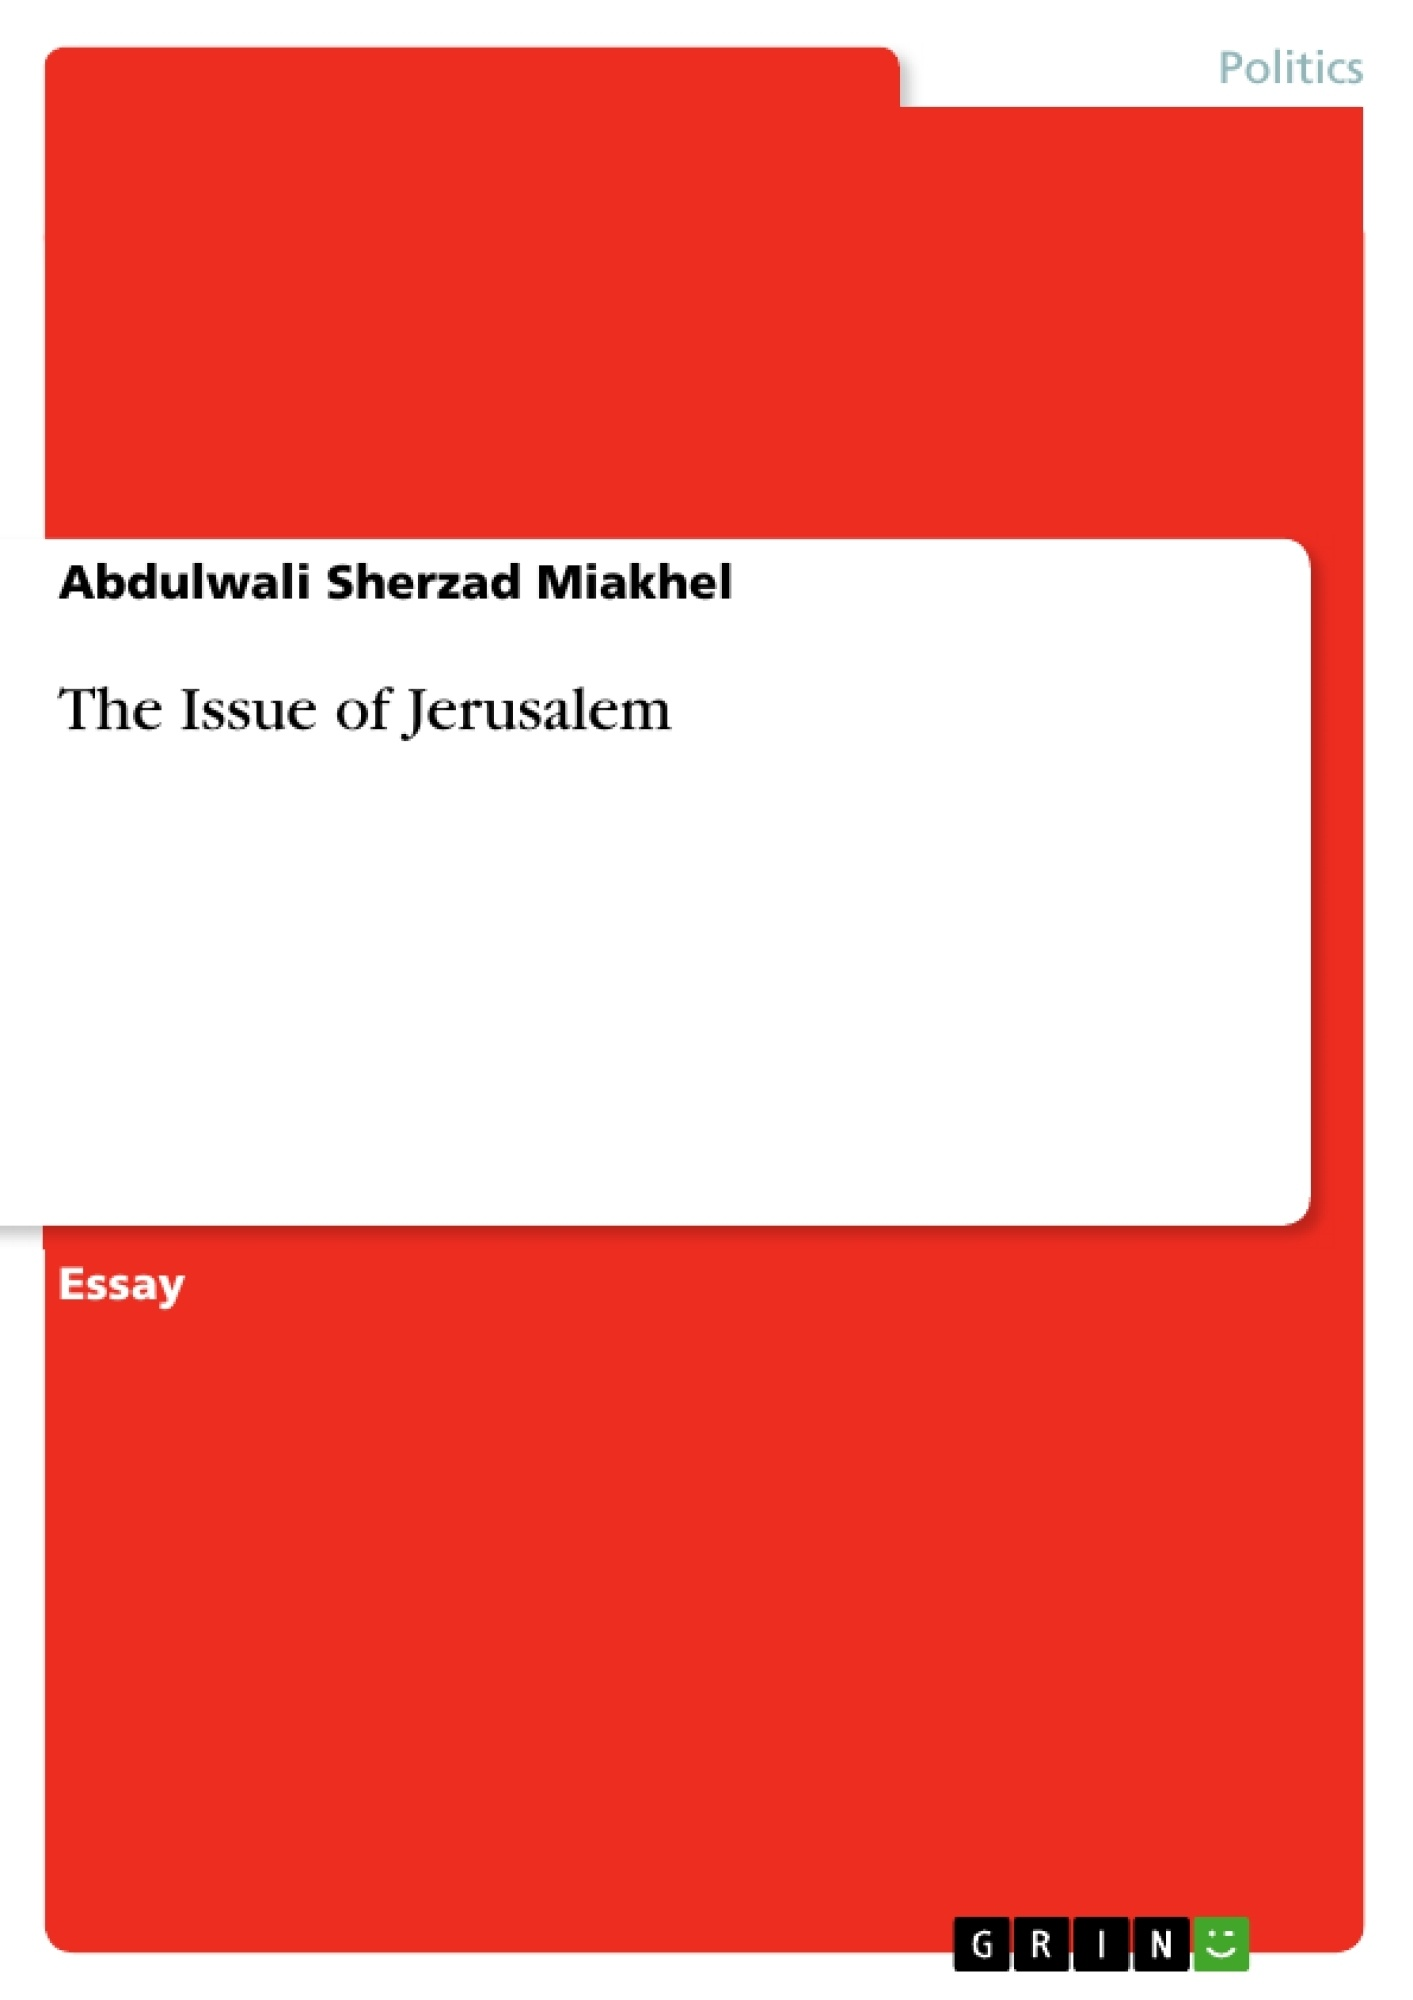 Title: The Issue of Jerusalem